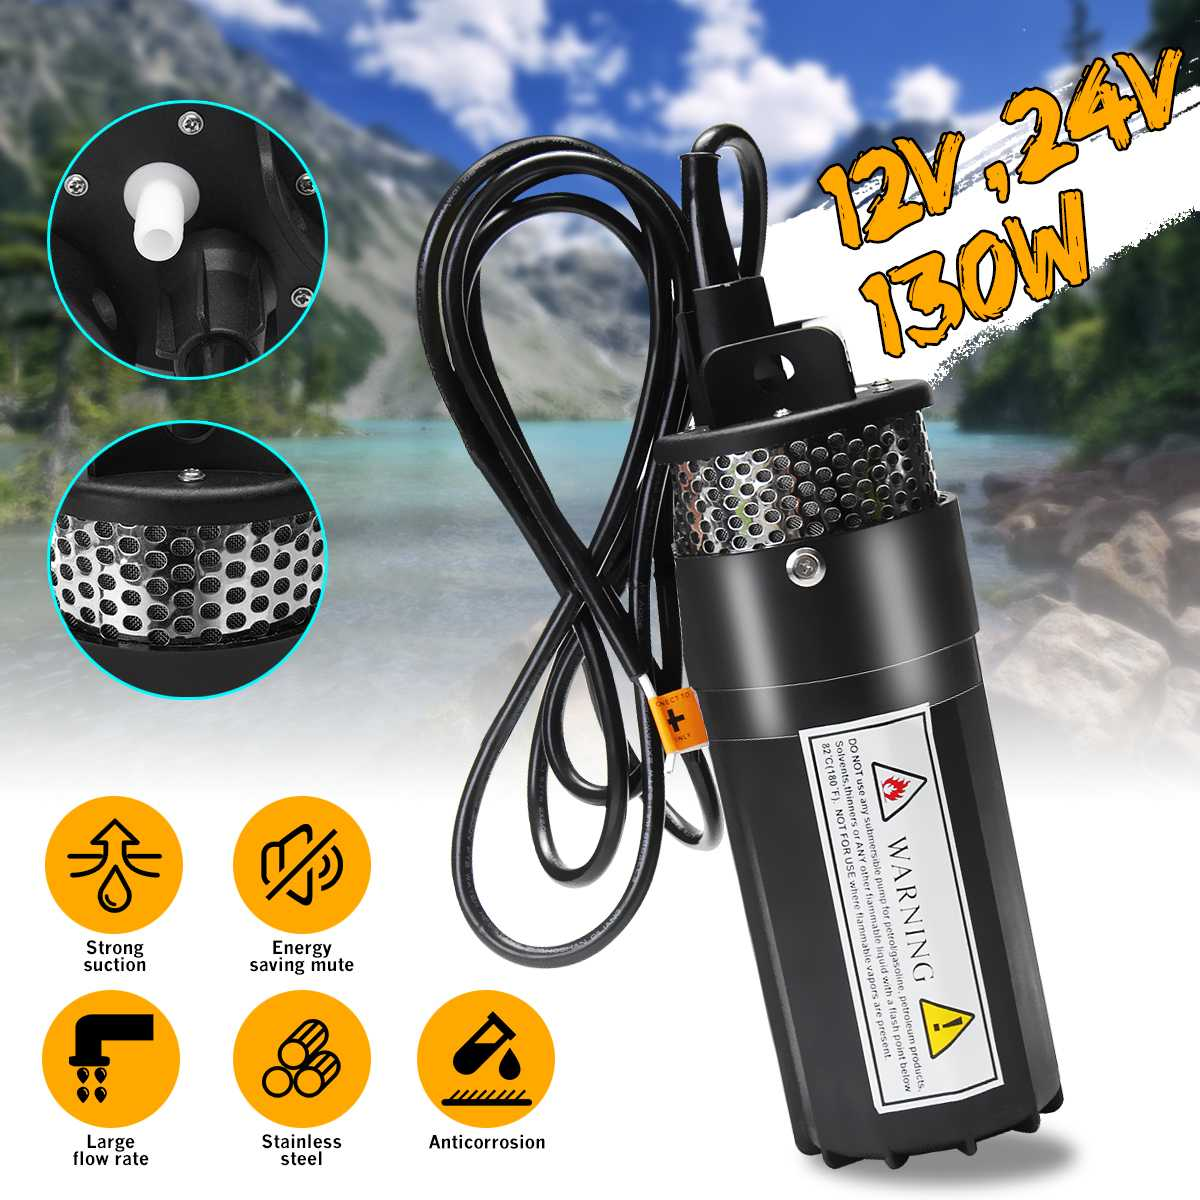 12V DC Electric Submersible Pump Deep Well Water Pump Solar Water Pumps For Home Garden Irrigation + 15A Solar Panel Controller